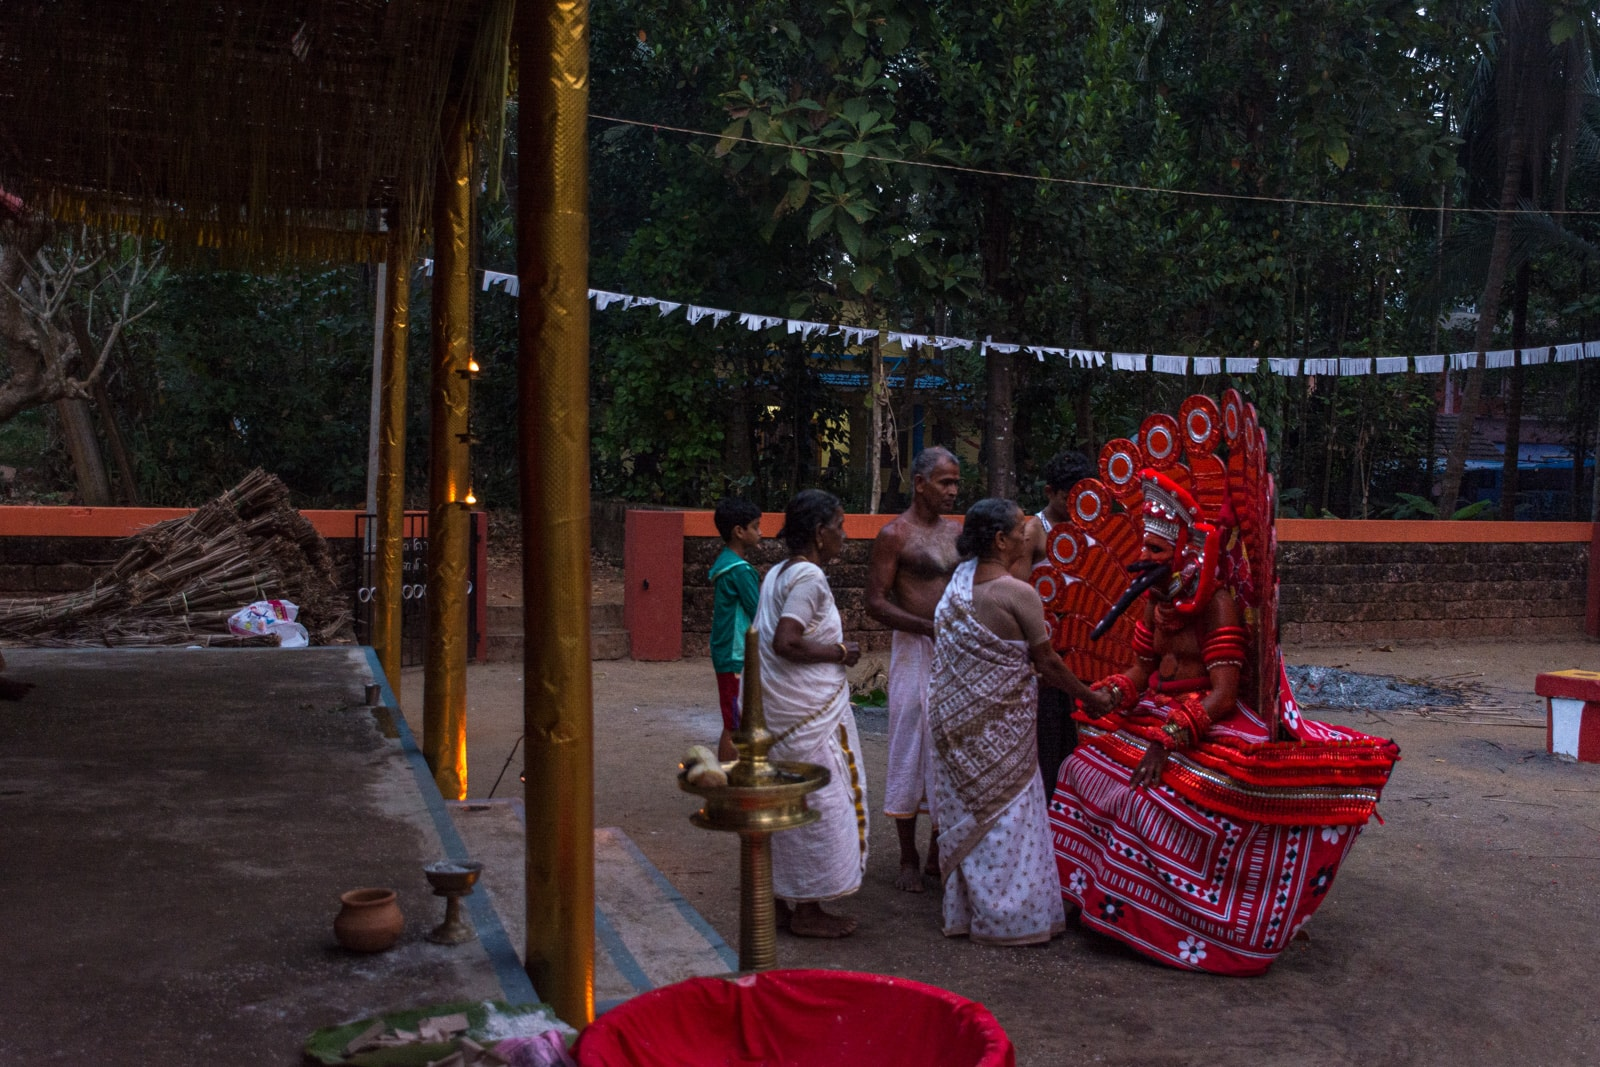 People giving offerings to a theyyam dancer in Kerala, India